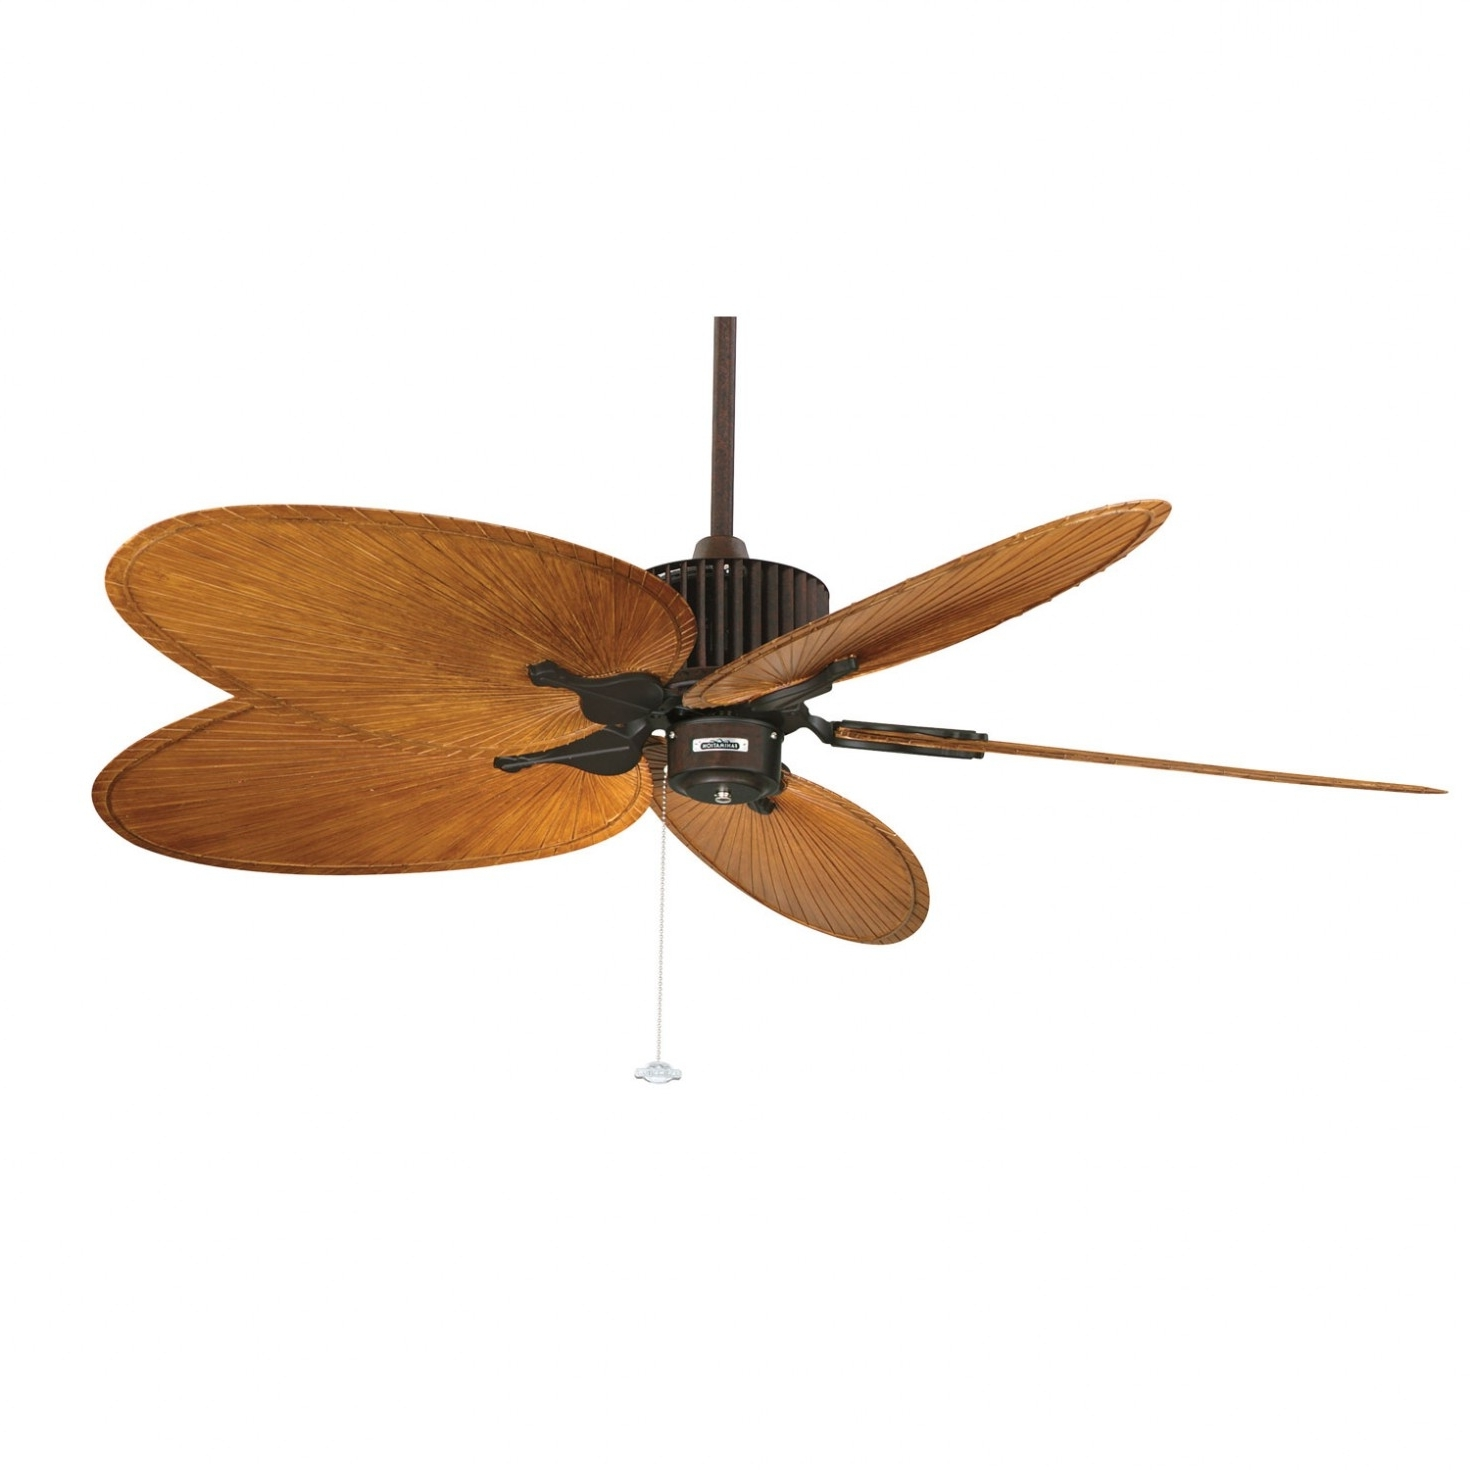 Widely Used Outdoor Ceiling Fans With Palm Blades Regarding Palm Leaf Ceiling Fan — Foothillfolk Designs (View 20 of 20)